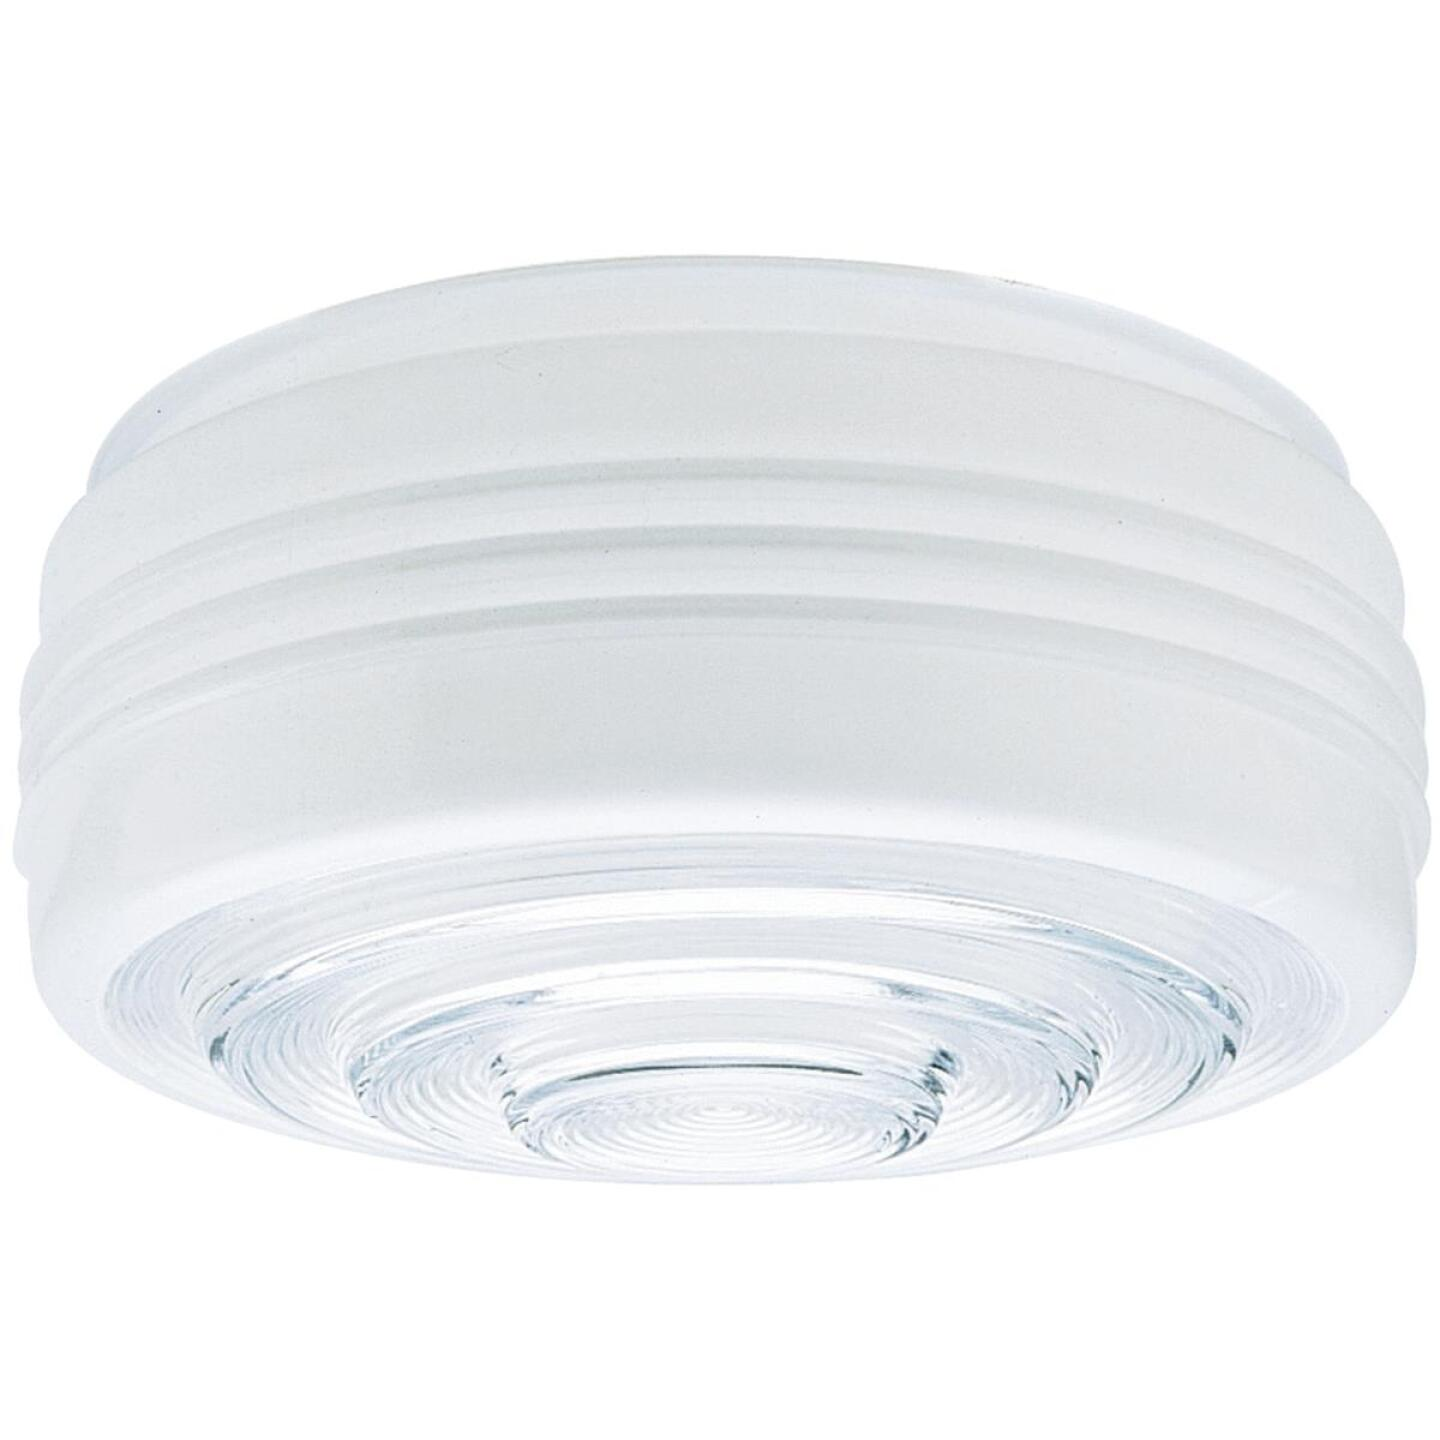 Westinghouse White & Clear 4-1/4 In. x 11 In. Drum Ceiling Shade Image 1